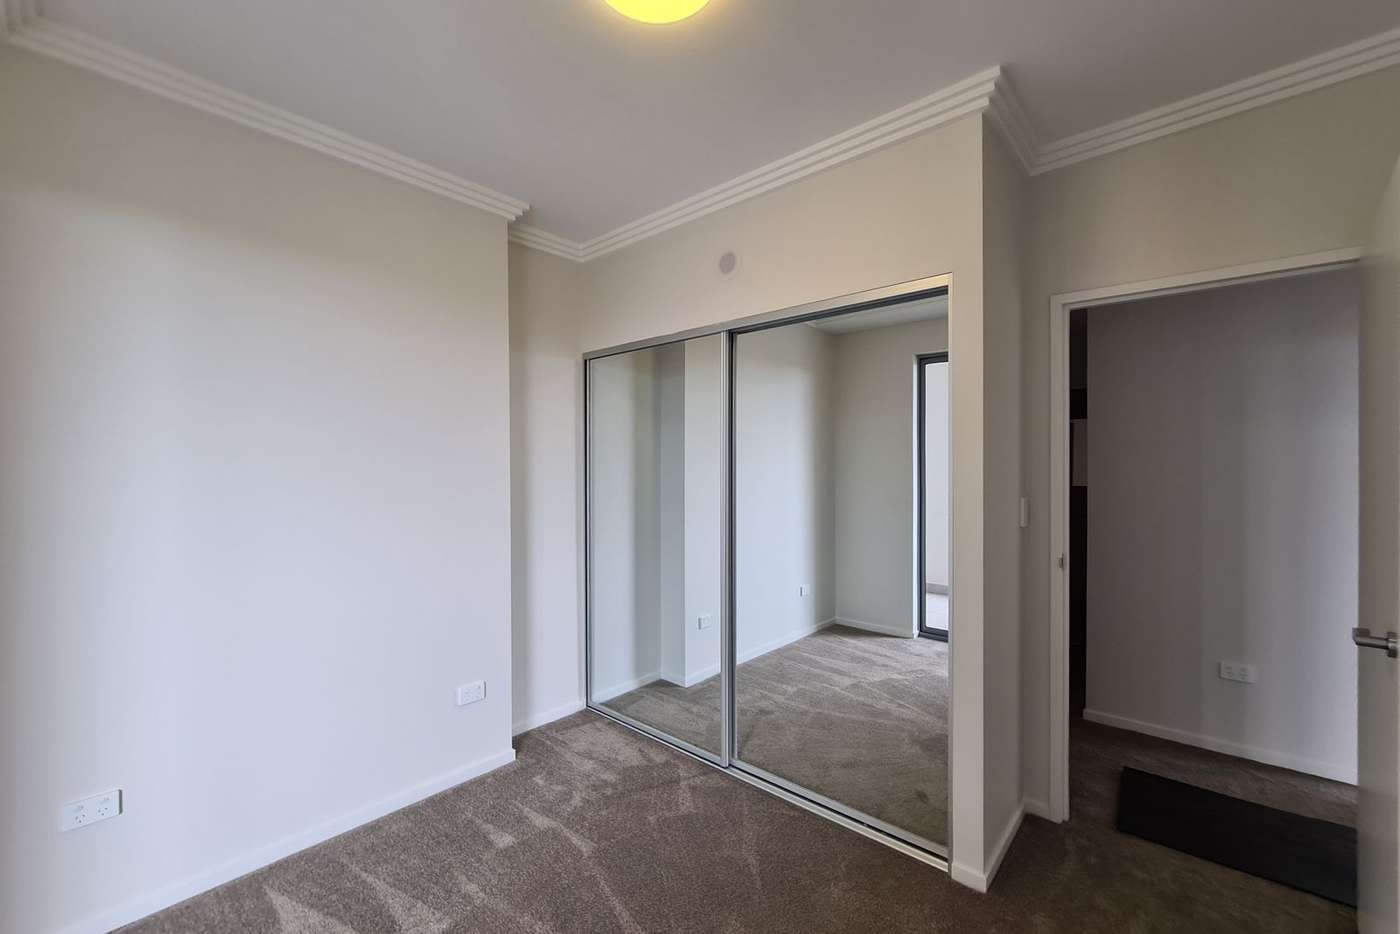 Seventh view of Homely apartment listing, 301/123 Castlereagh Street, Liverpool NSW 2170